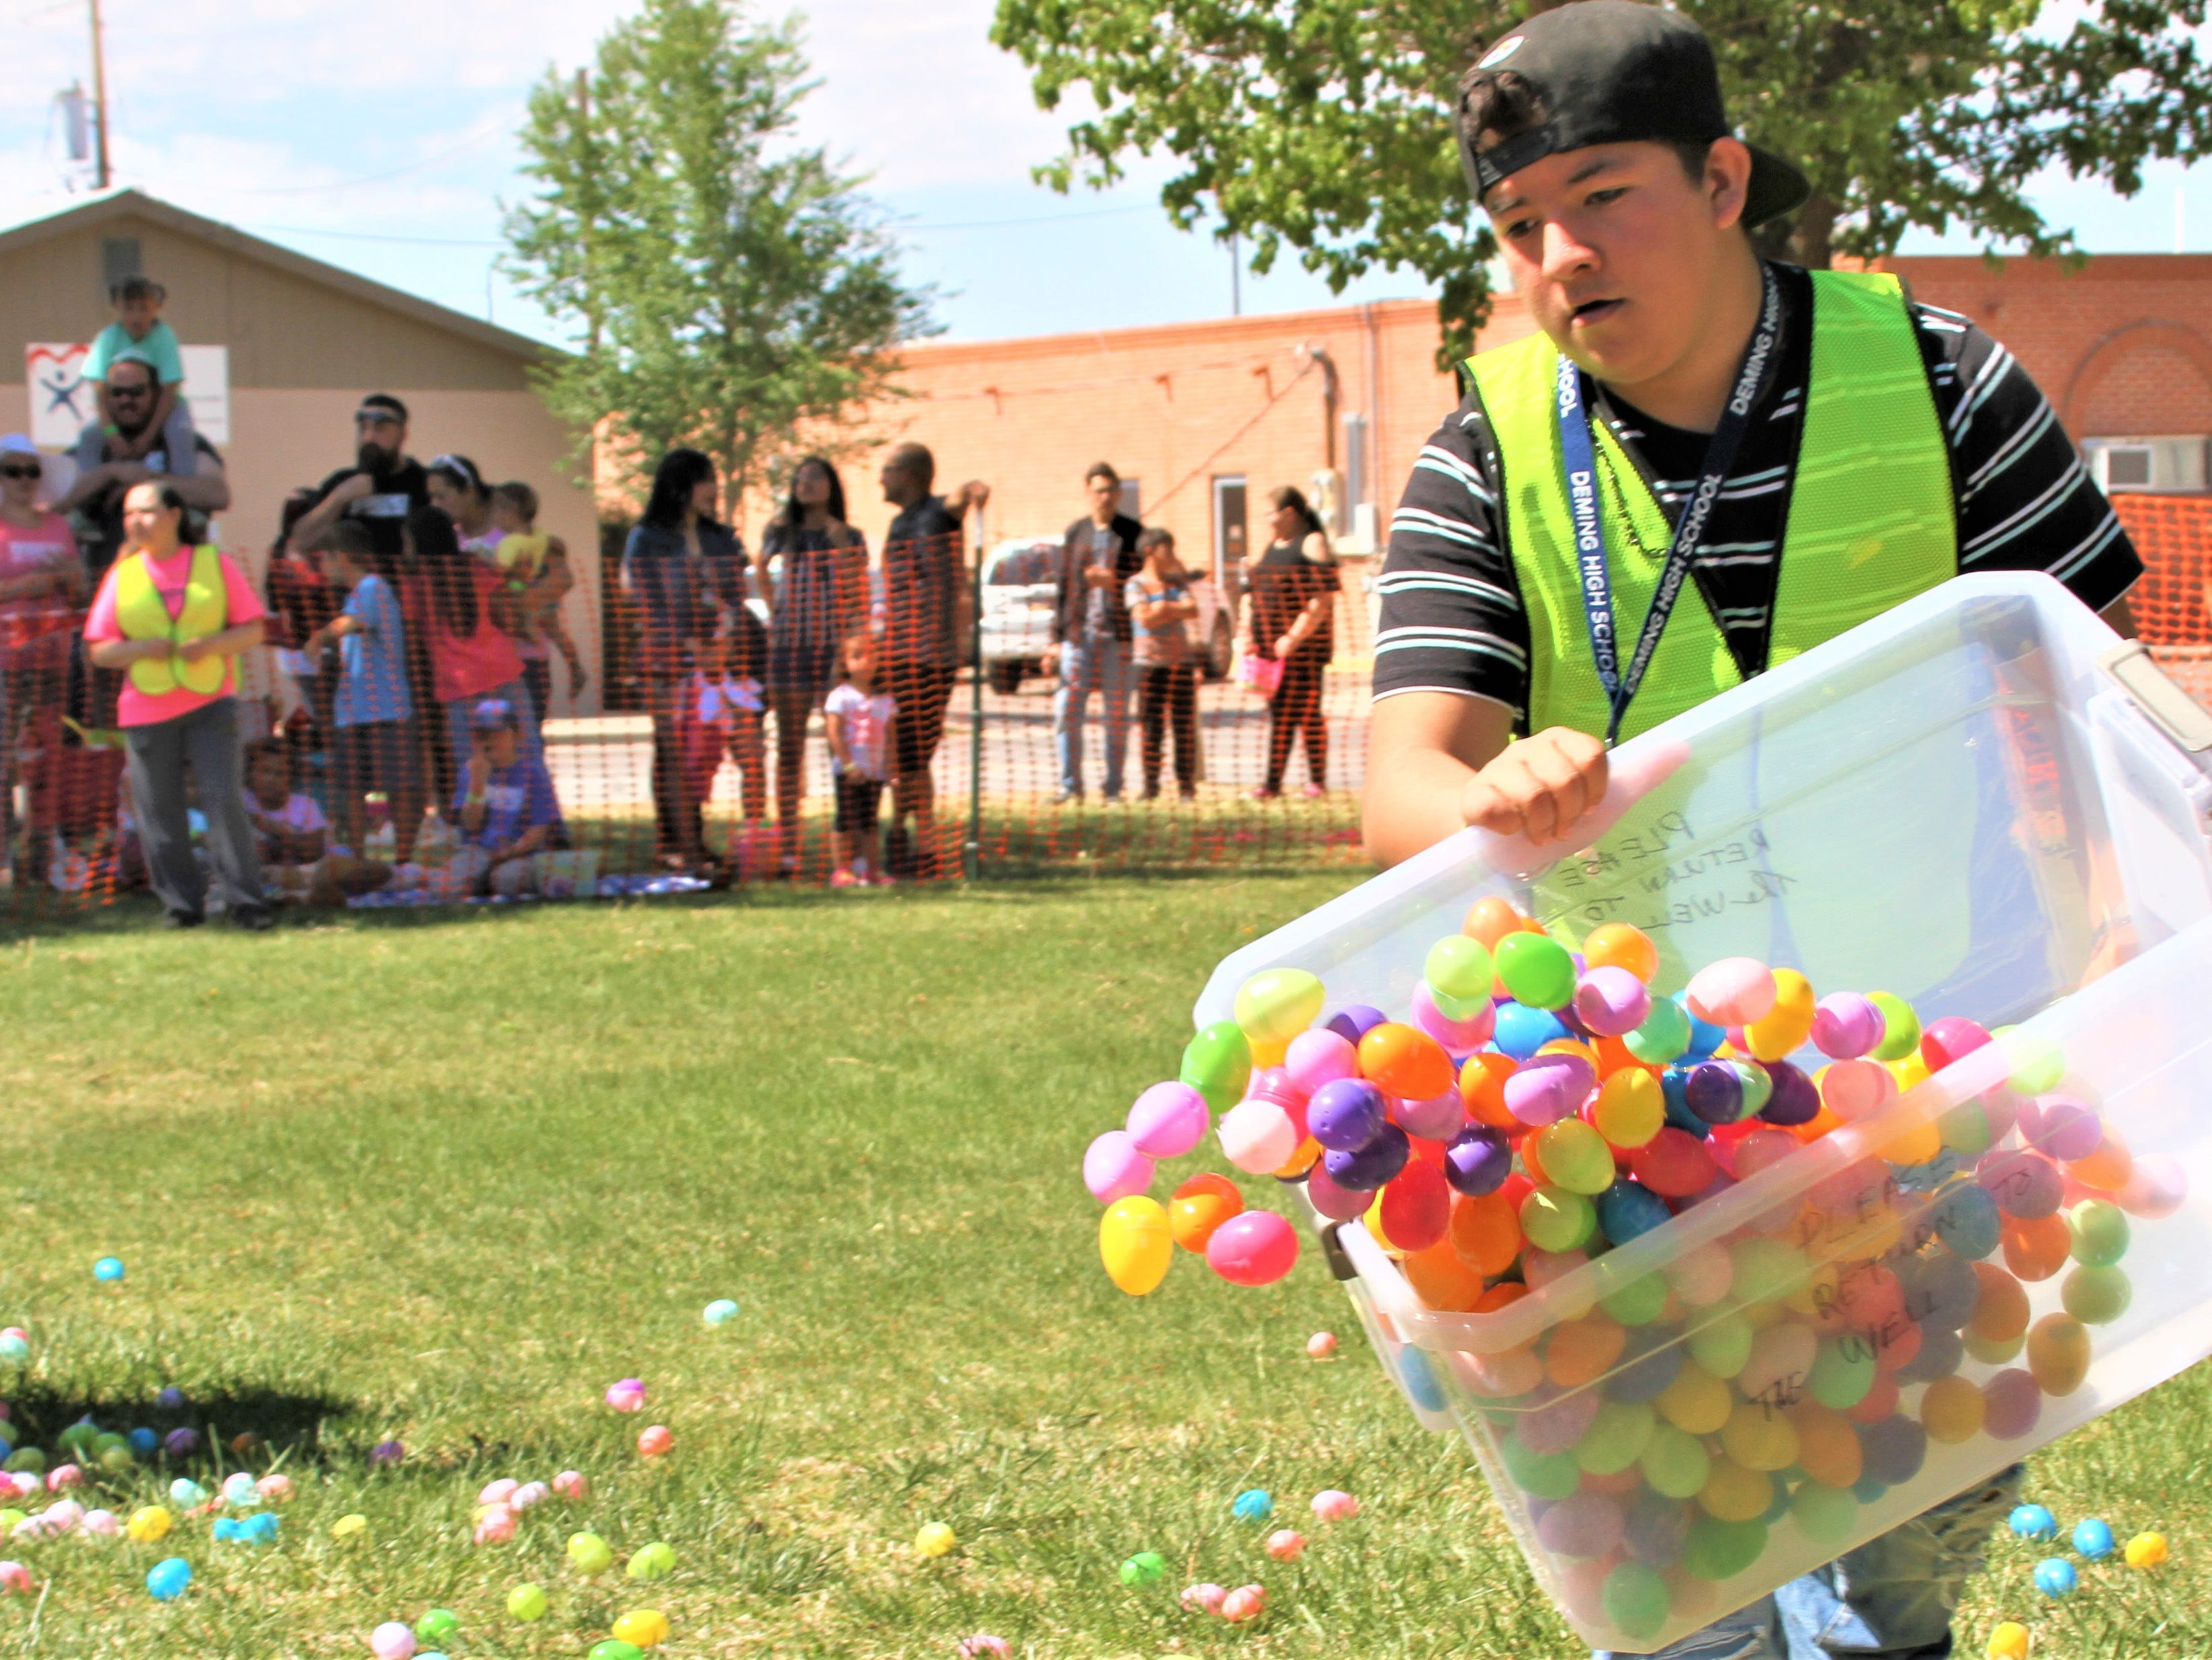 Deming First Assembly of God dumping plastic eggs for next age group.